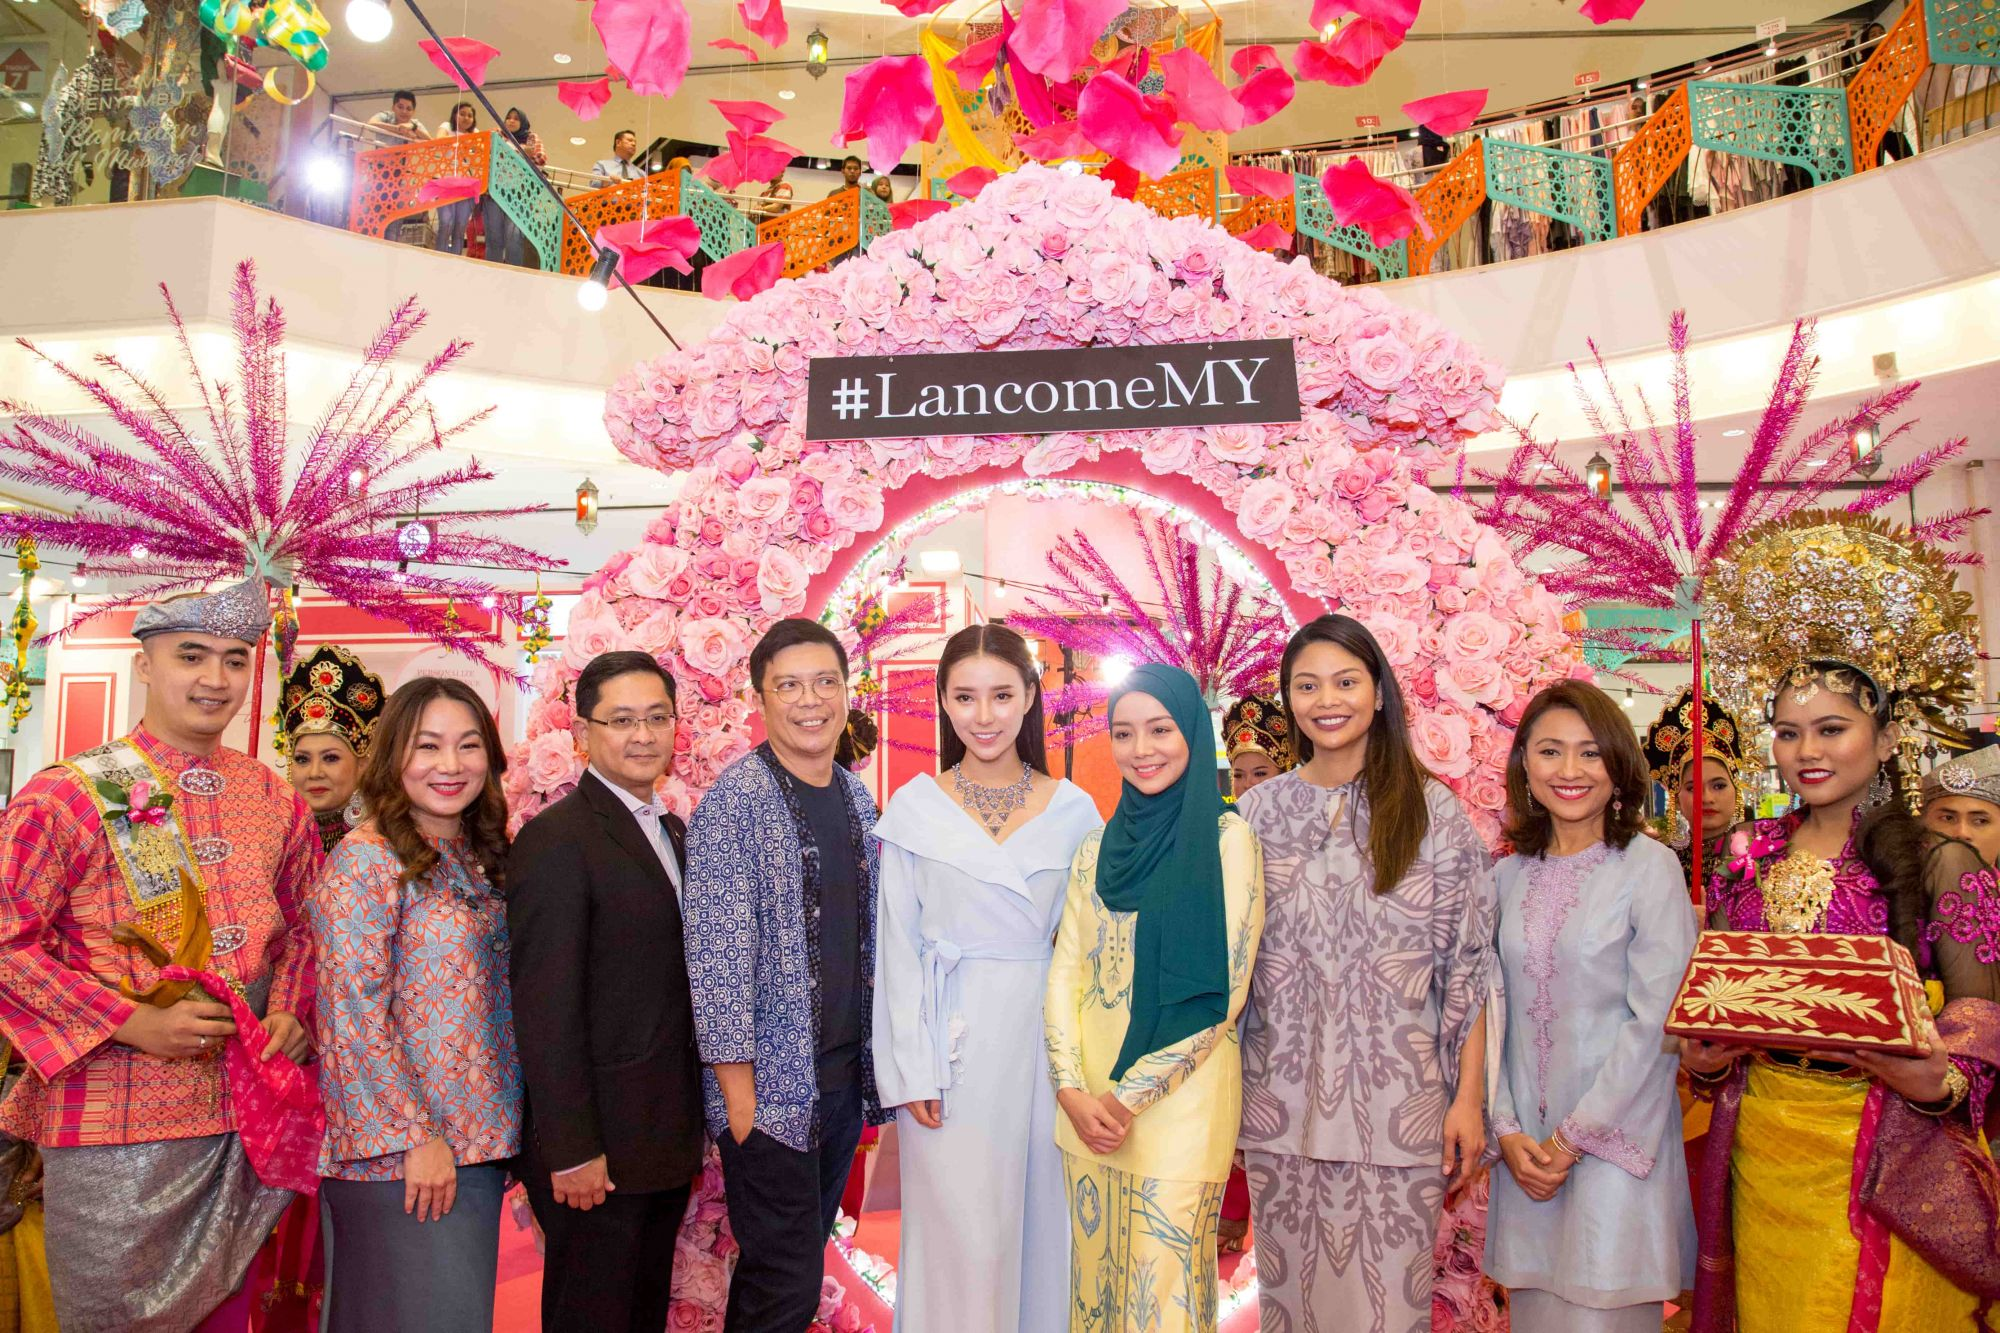 Sogo KL team, VIPs and Lancome Malaysia gather for a photo op at the buka puasa event